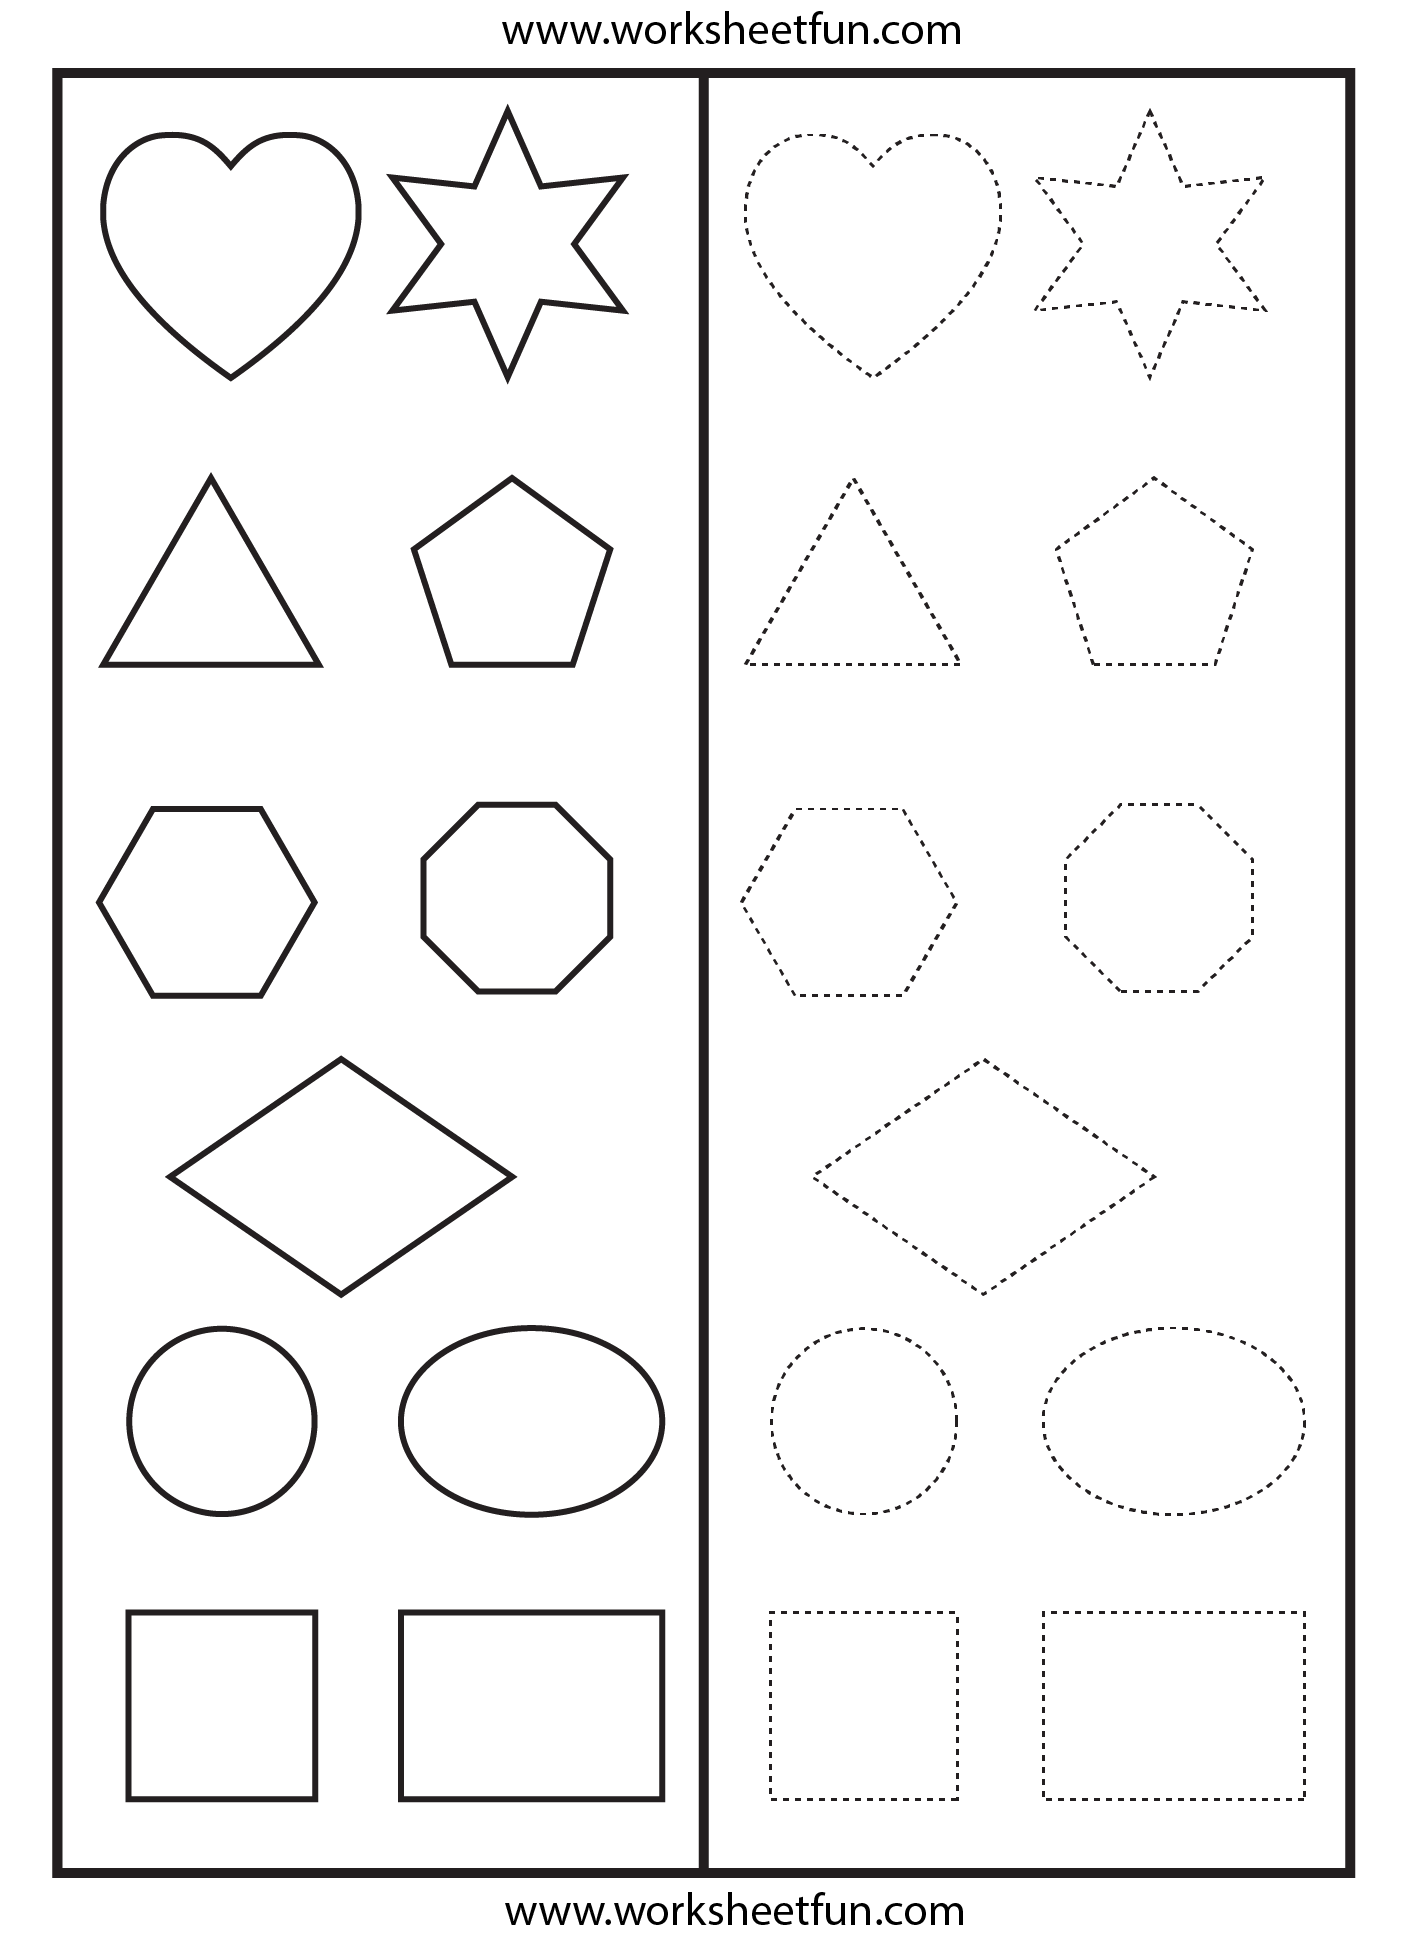 shapes tracing worksheet printable worksheets pinterest